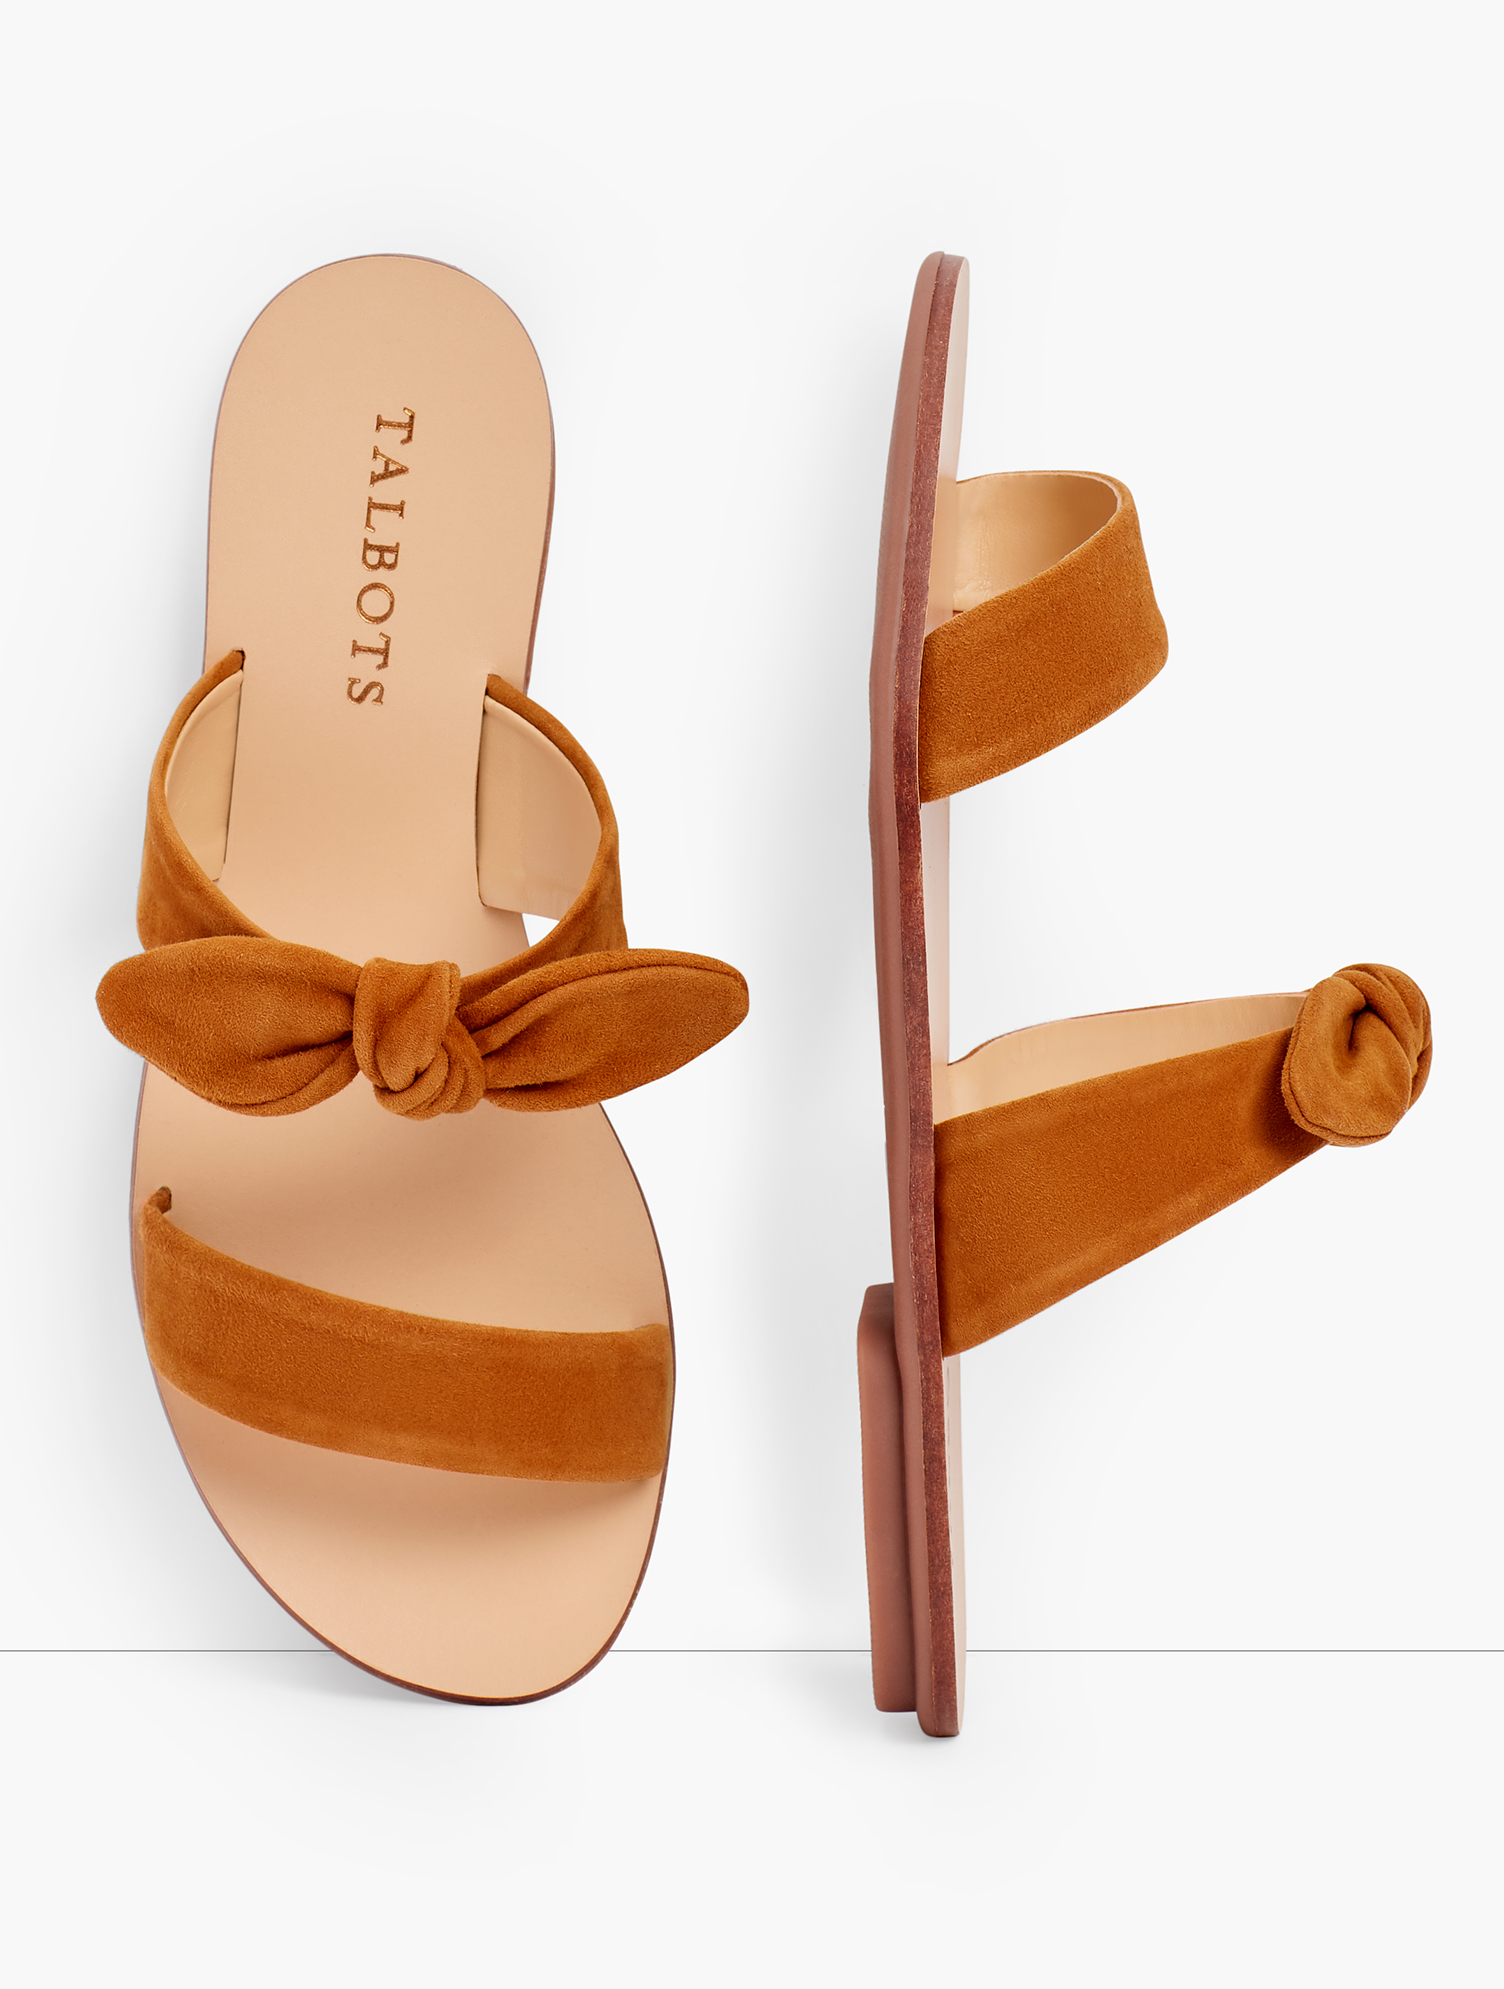 Hannah slides in soft suede. Fun knotted detail. Features Gift Box/Gift Wrap is not available for this item 1/3 inches heel Rubber Sole Imported Material: 100% Leather Hannah Knotted Slides - Suede - Spring Sienna - 7M Talbots